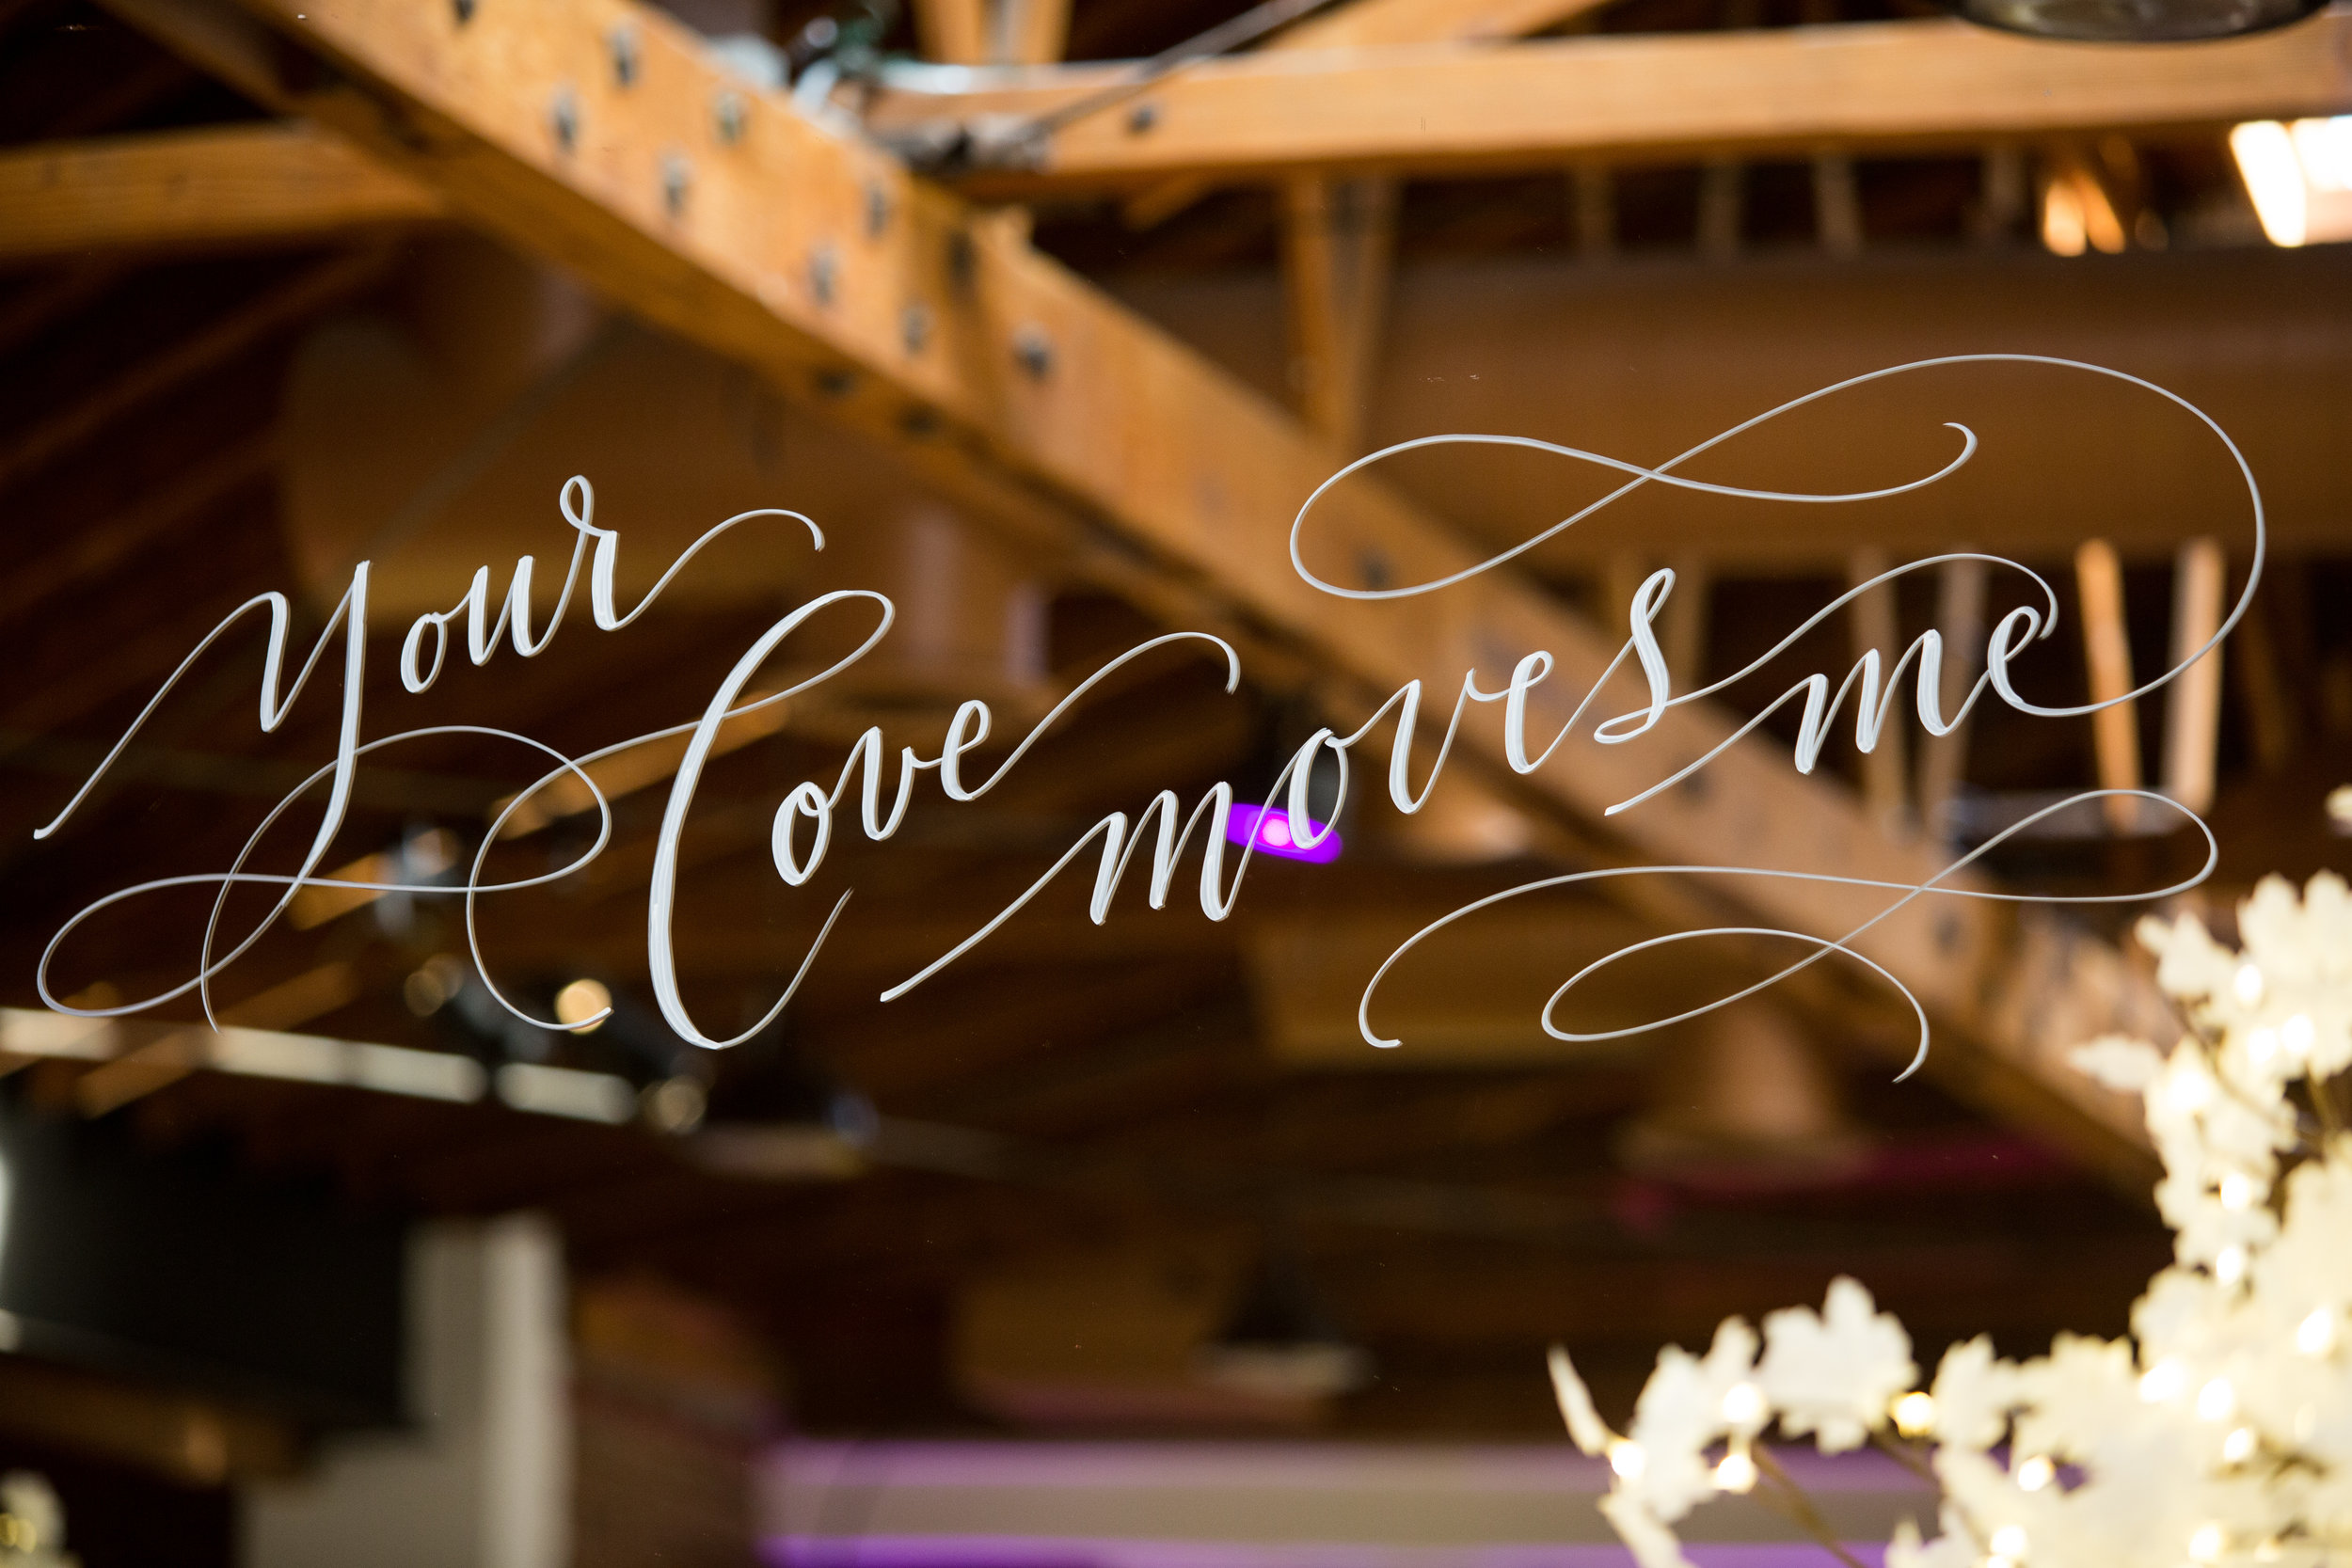 Love-in-motion-styled-shoot-hylahwhitespecialevents-dukephotography-atthep-shawnayamamoto-15